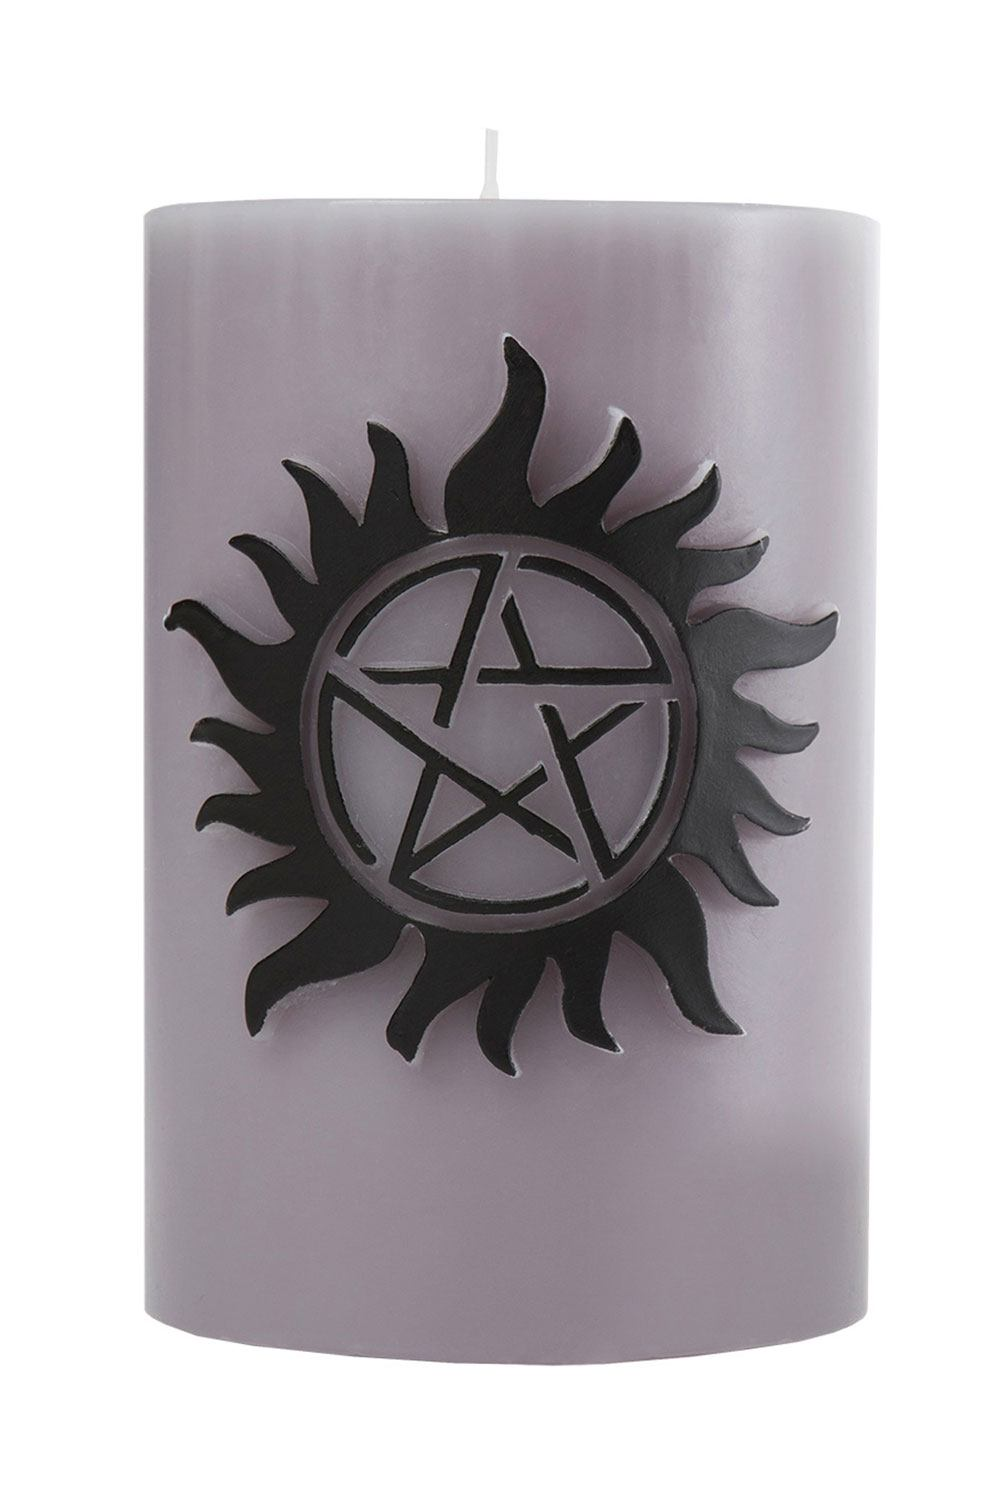 Supernatural XL Candle Anti Possession 15 x 10 cm